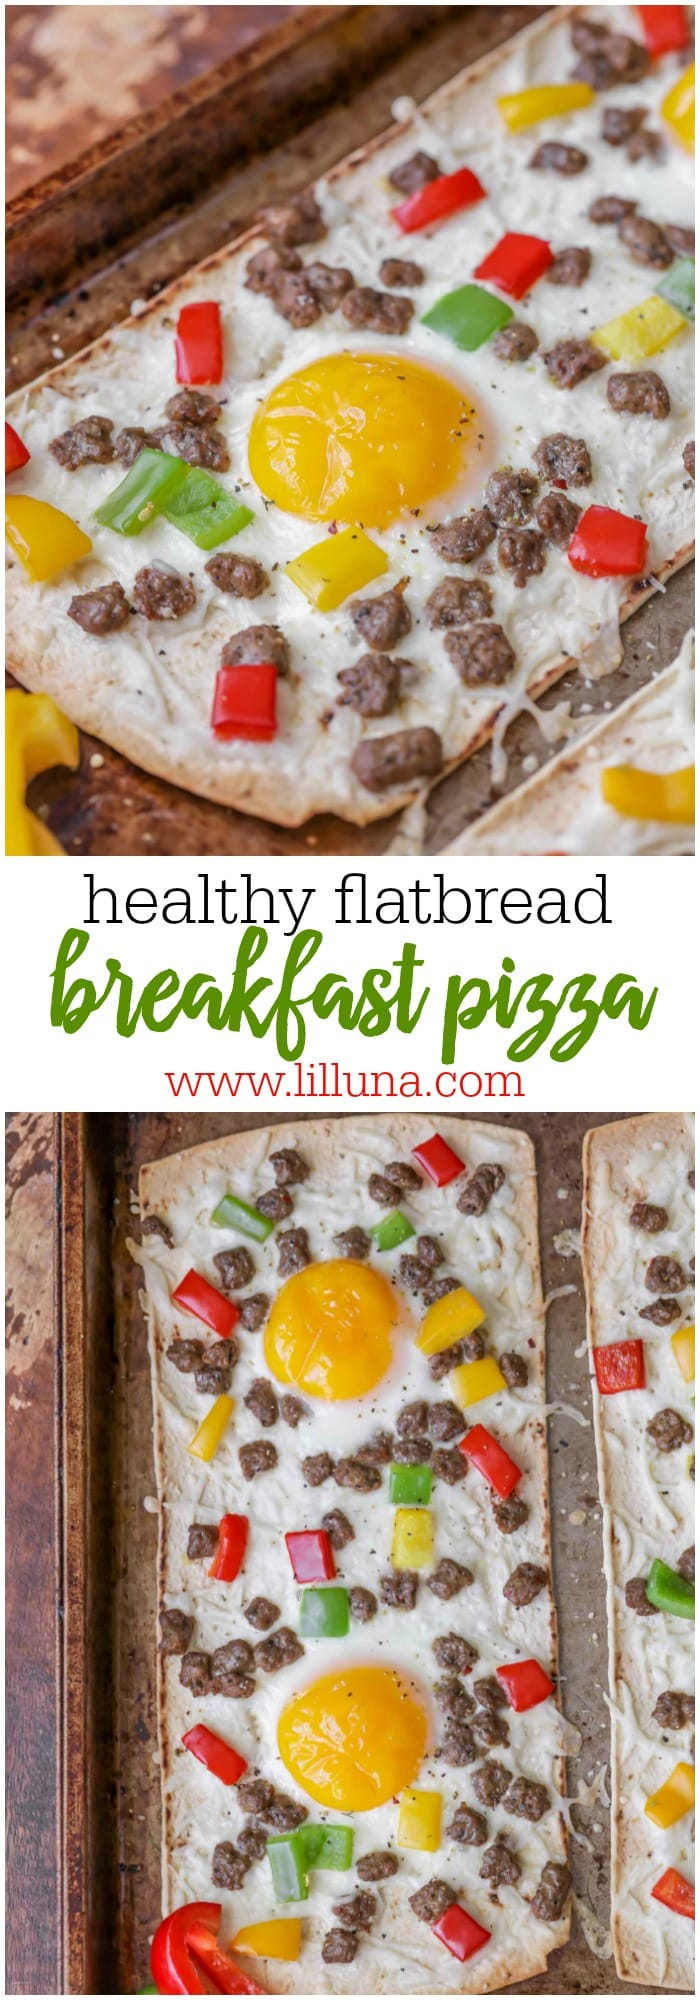 Delicious Healthy Flatbread Breakfast Pizzas - topped with cheese, sausage, peppers and eggs and only 210 calories per serving!